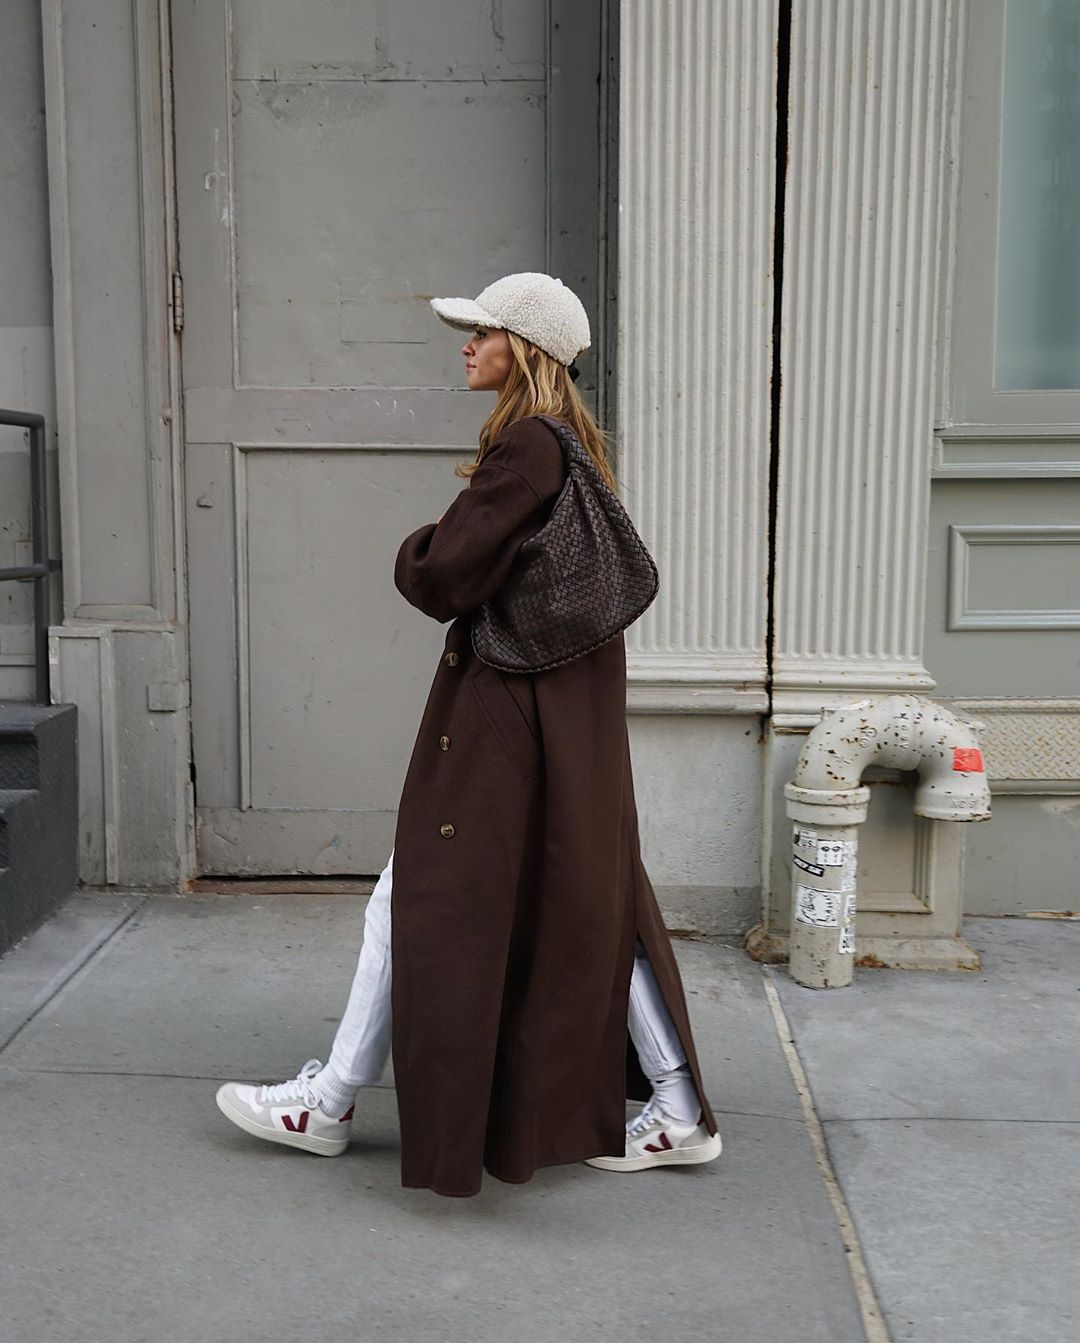 Casual-Cool Weekend Outfit — Shearling Hat, Long Brown Coat, Woven Hobo Bag, Cropped White Jeans, and Veja White Sneakers